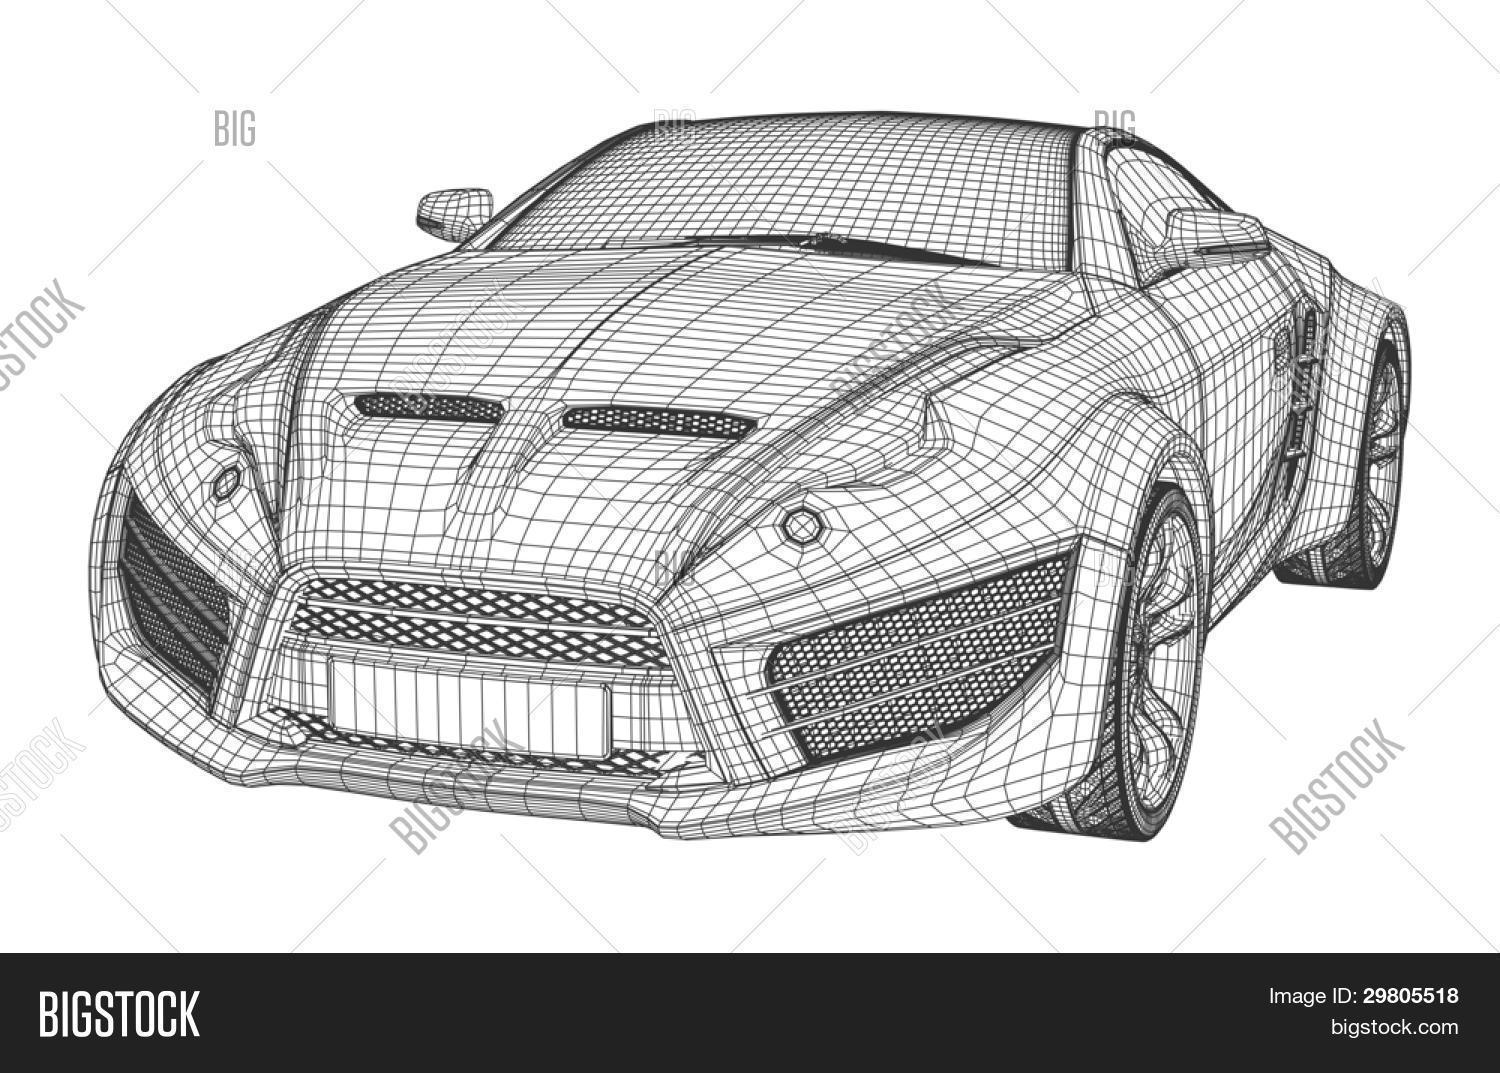 Sports car blueprint vector photo free trial bigstock sports car blueprint non branded concept car malvernweather Choice Image